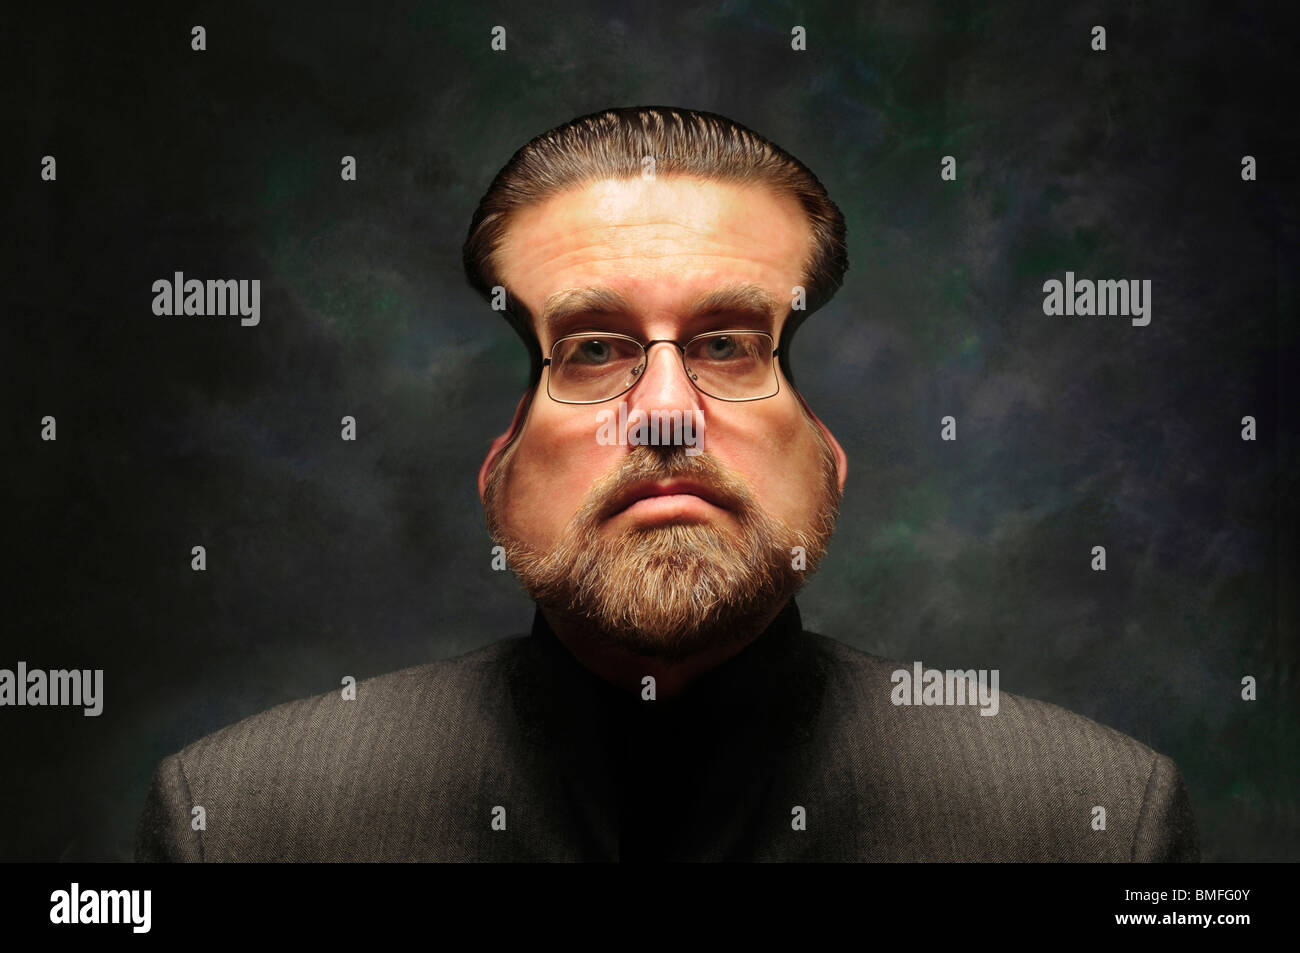 Man with squeezed face distorted with glasses and beard - Stock Image